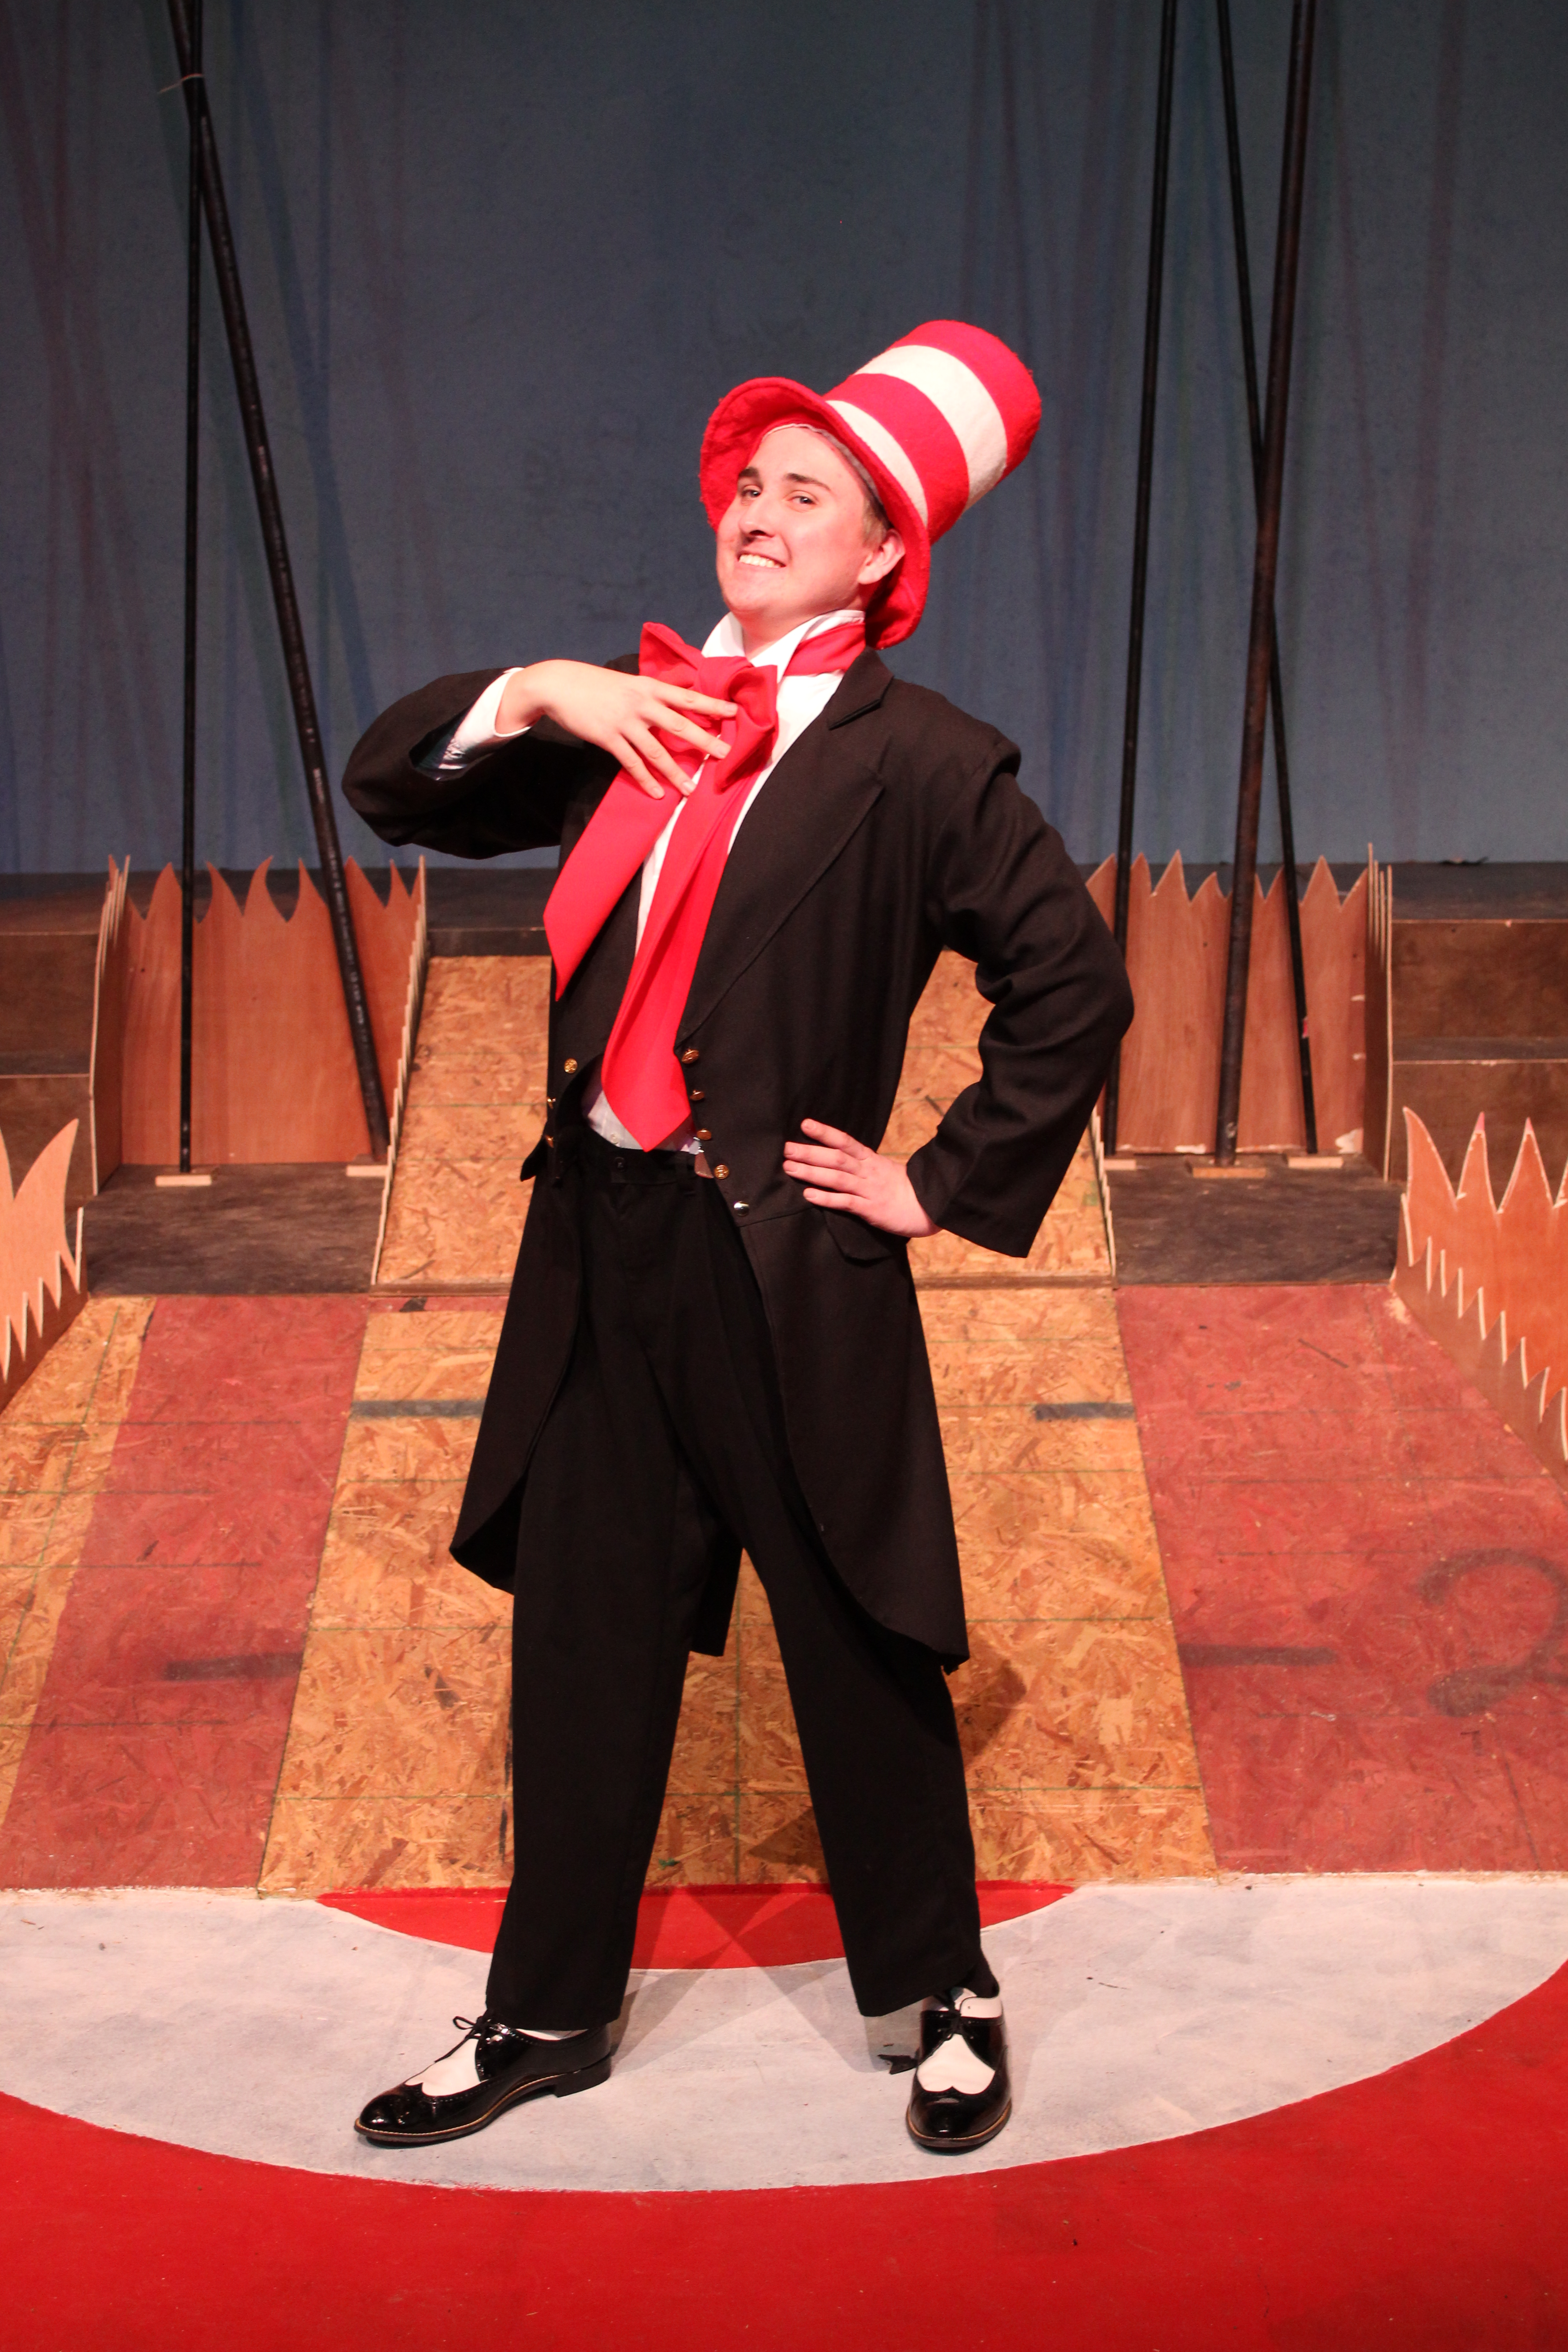 Gehs senior thomas von dohlen as the cat in the hat in a scene from